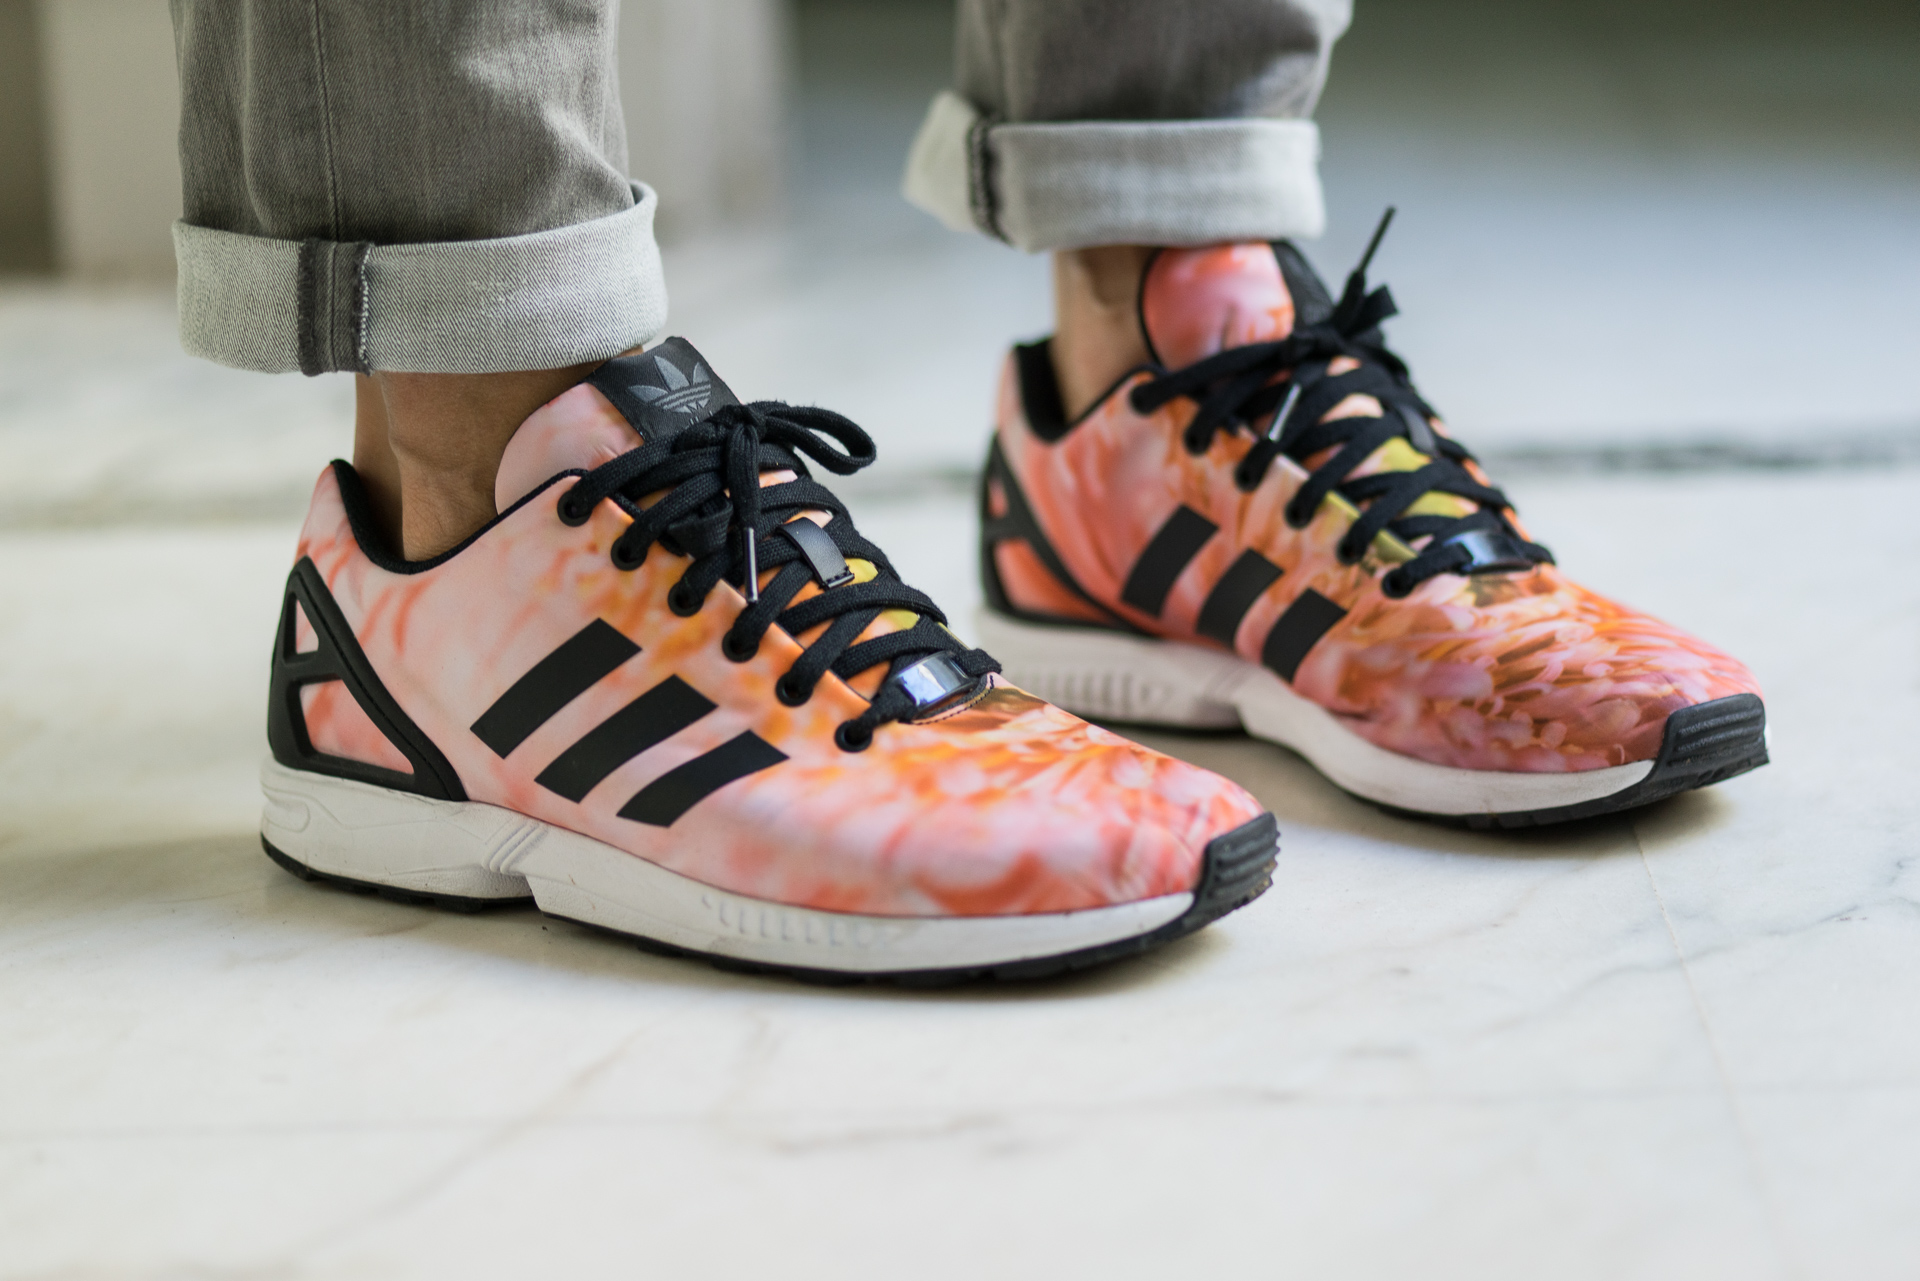 hot sale online cb74c 8d324 adidas zx flux femme orange